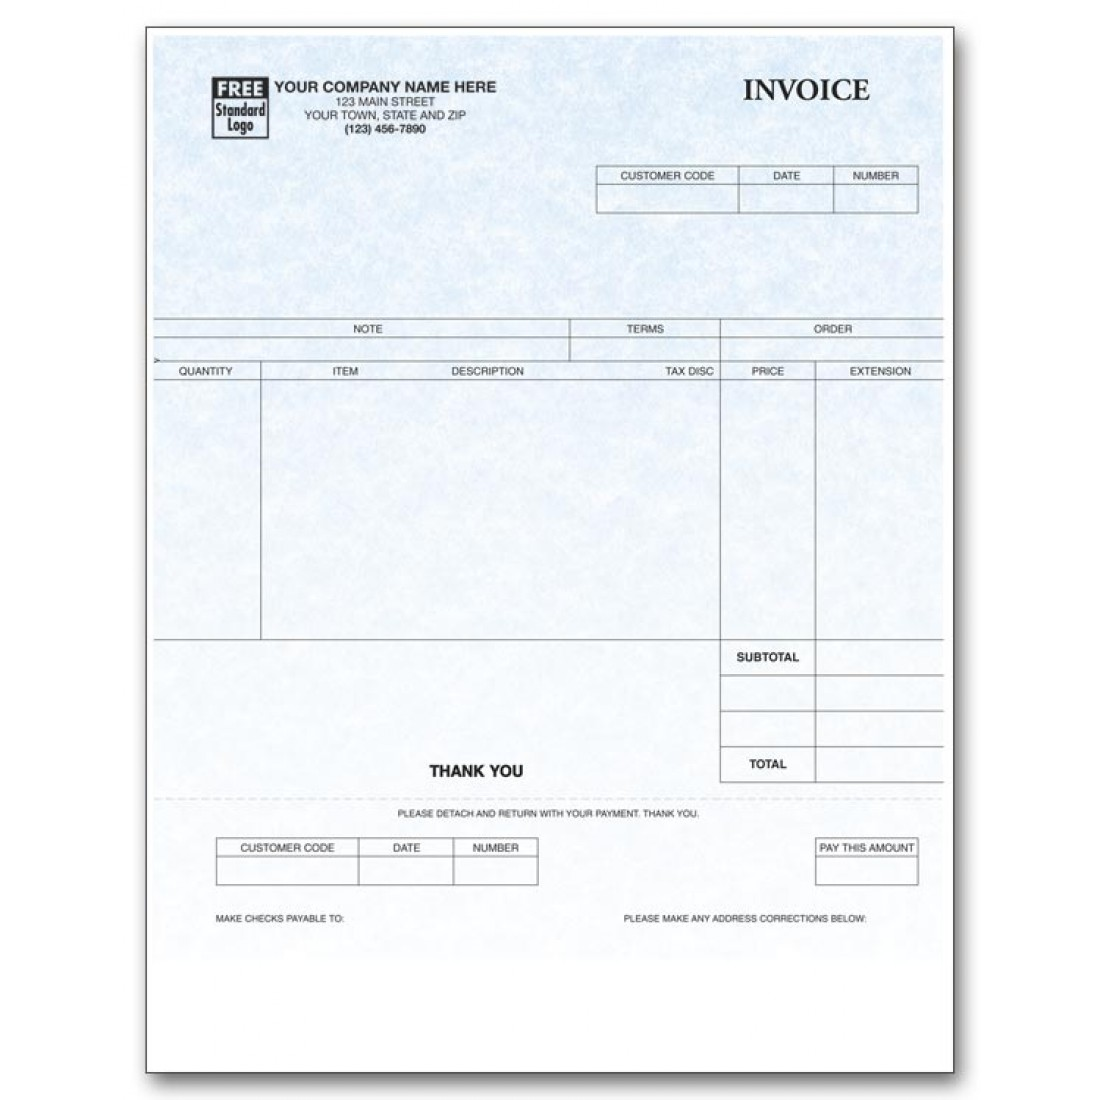 personalized laser invoices free shipping